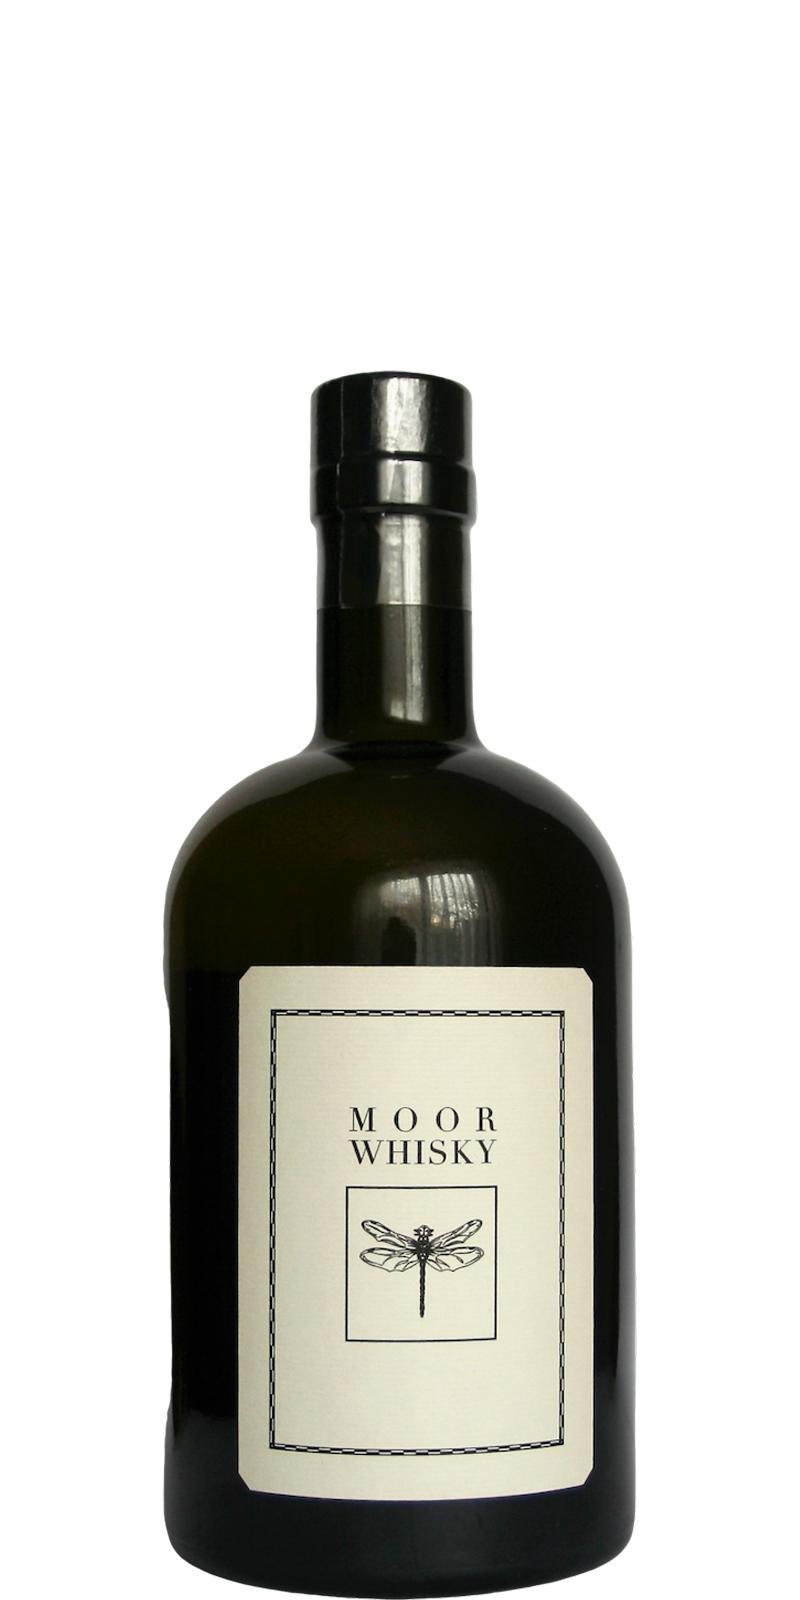 Moor Whisky 05-year-old